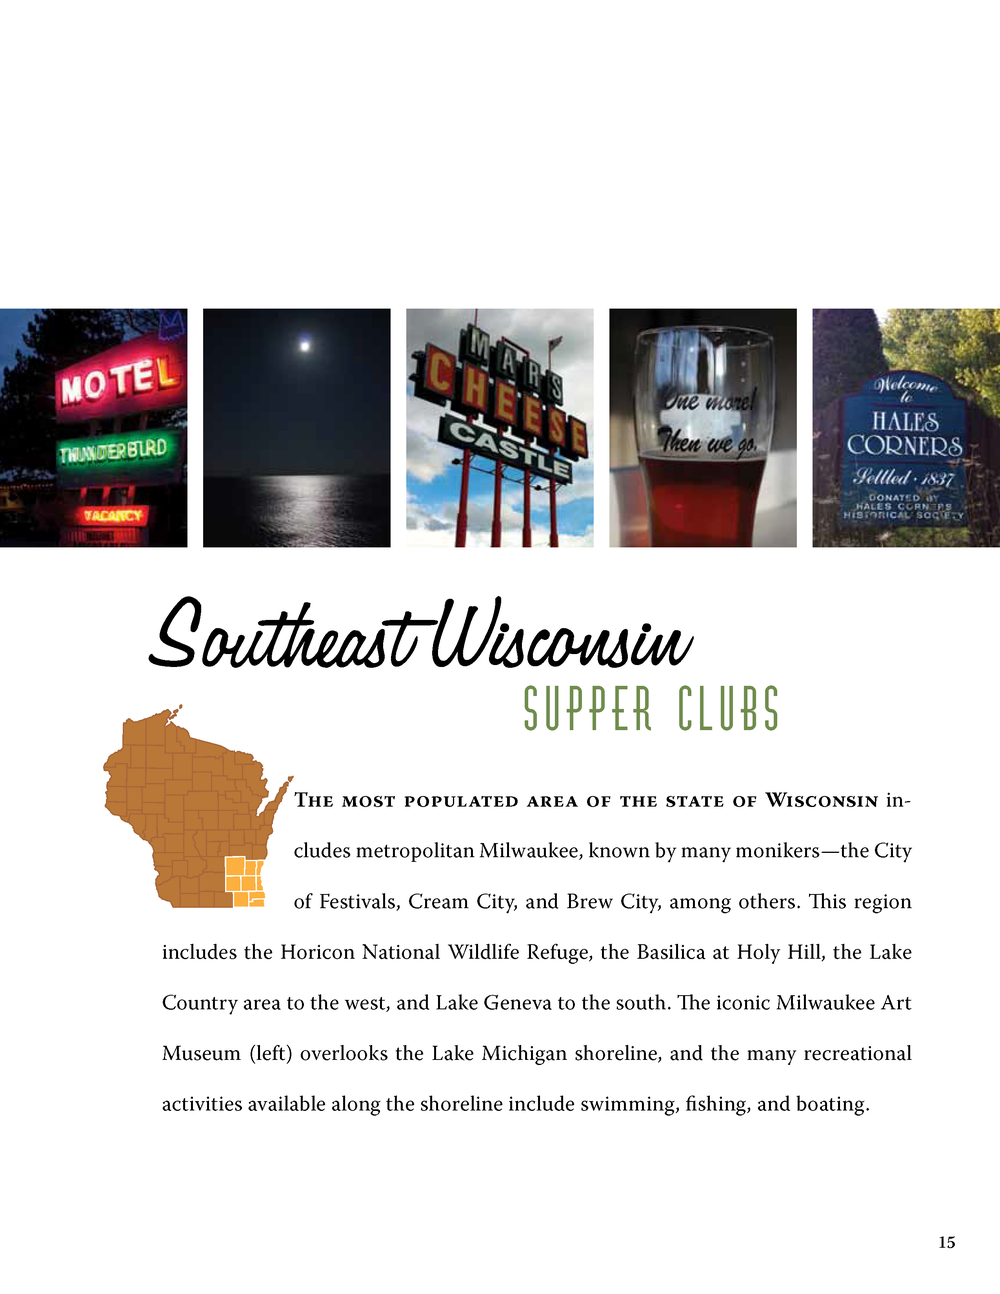 Wisconsin Supper Clubs_Page_10.png